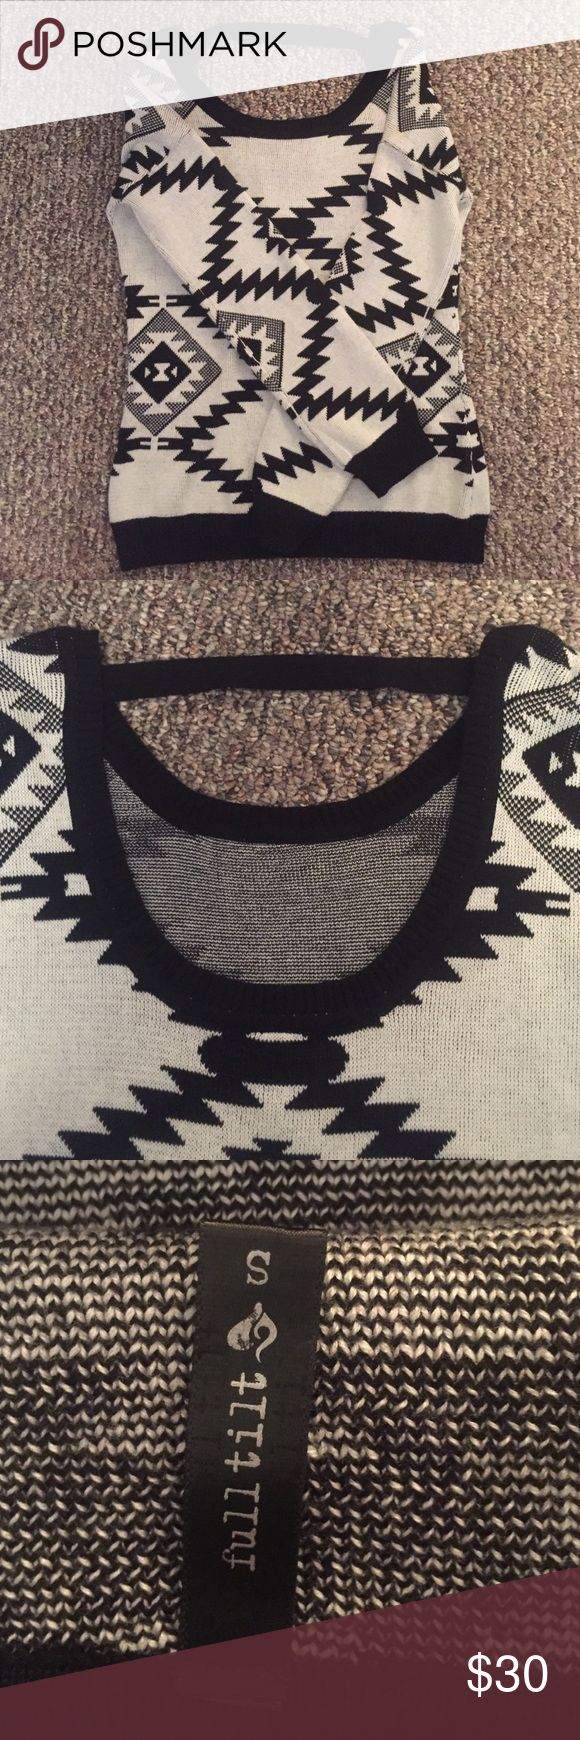 Bar back tribal print sweater - full tilt s Worn once cute tribal print sweater from full tilt!! I bought it at tillys but ended up not liking it, it has a cute open bar back!! Size small Full Tilt Sweaters Crew & Scoop Necks